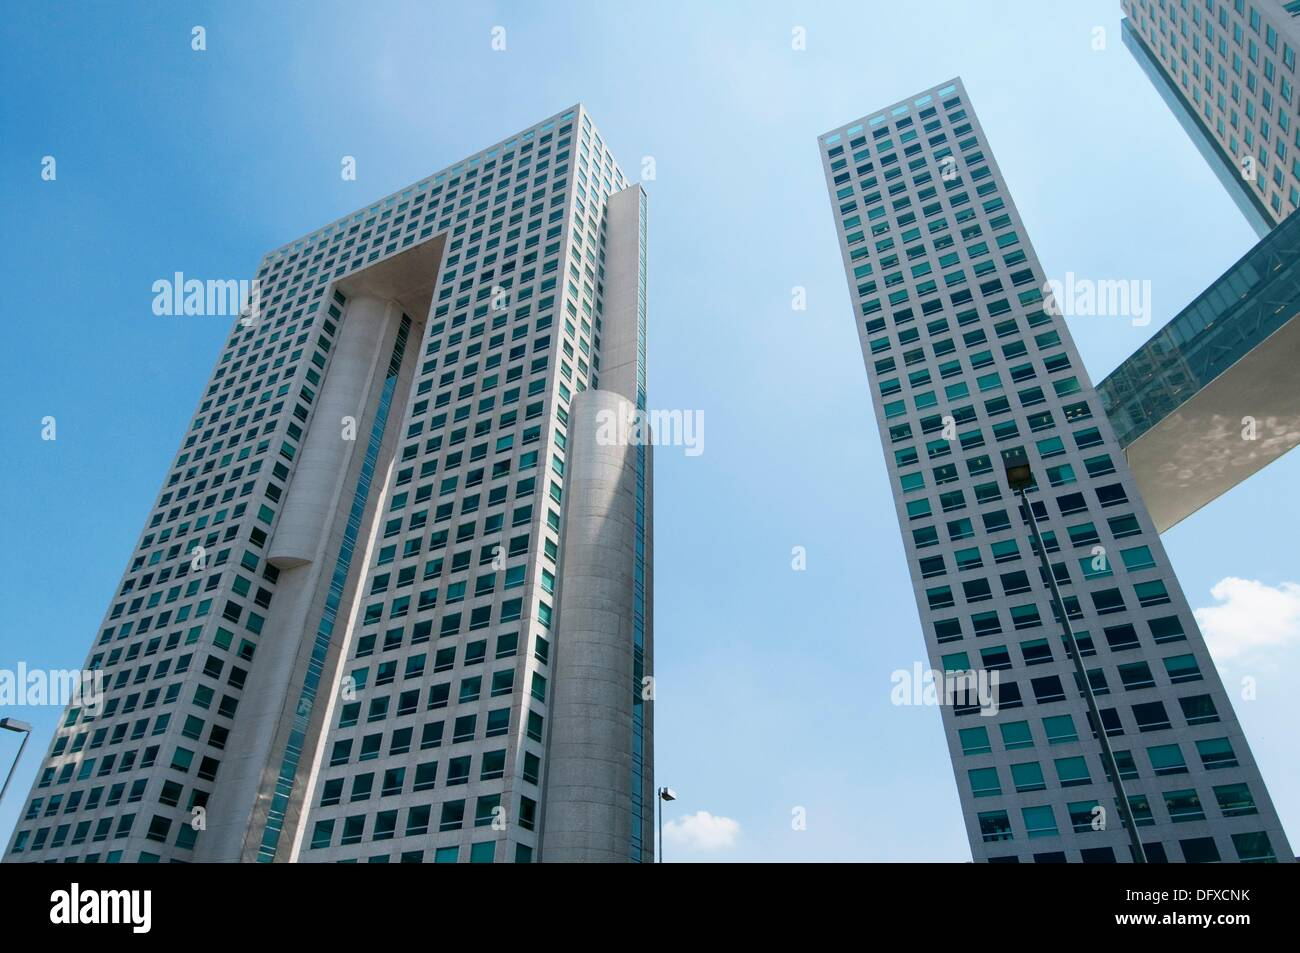 El Pantalon Building Bosques De Las Lomas Mexico City Mexico Stock Photo Alamy